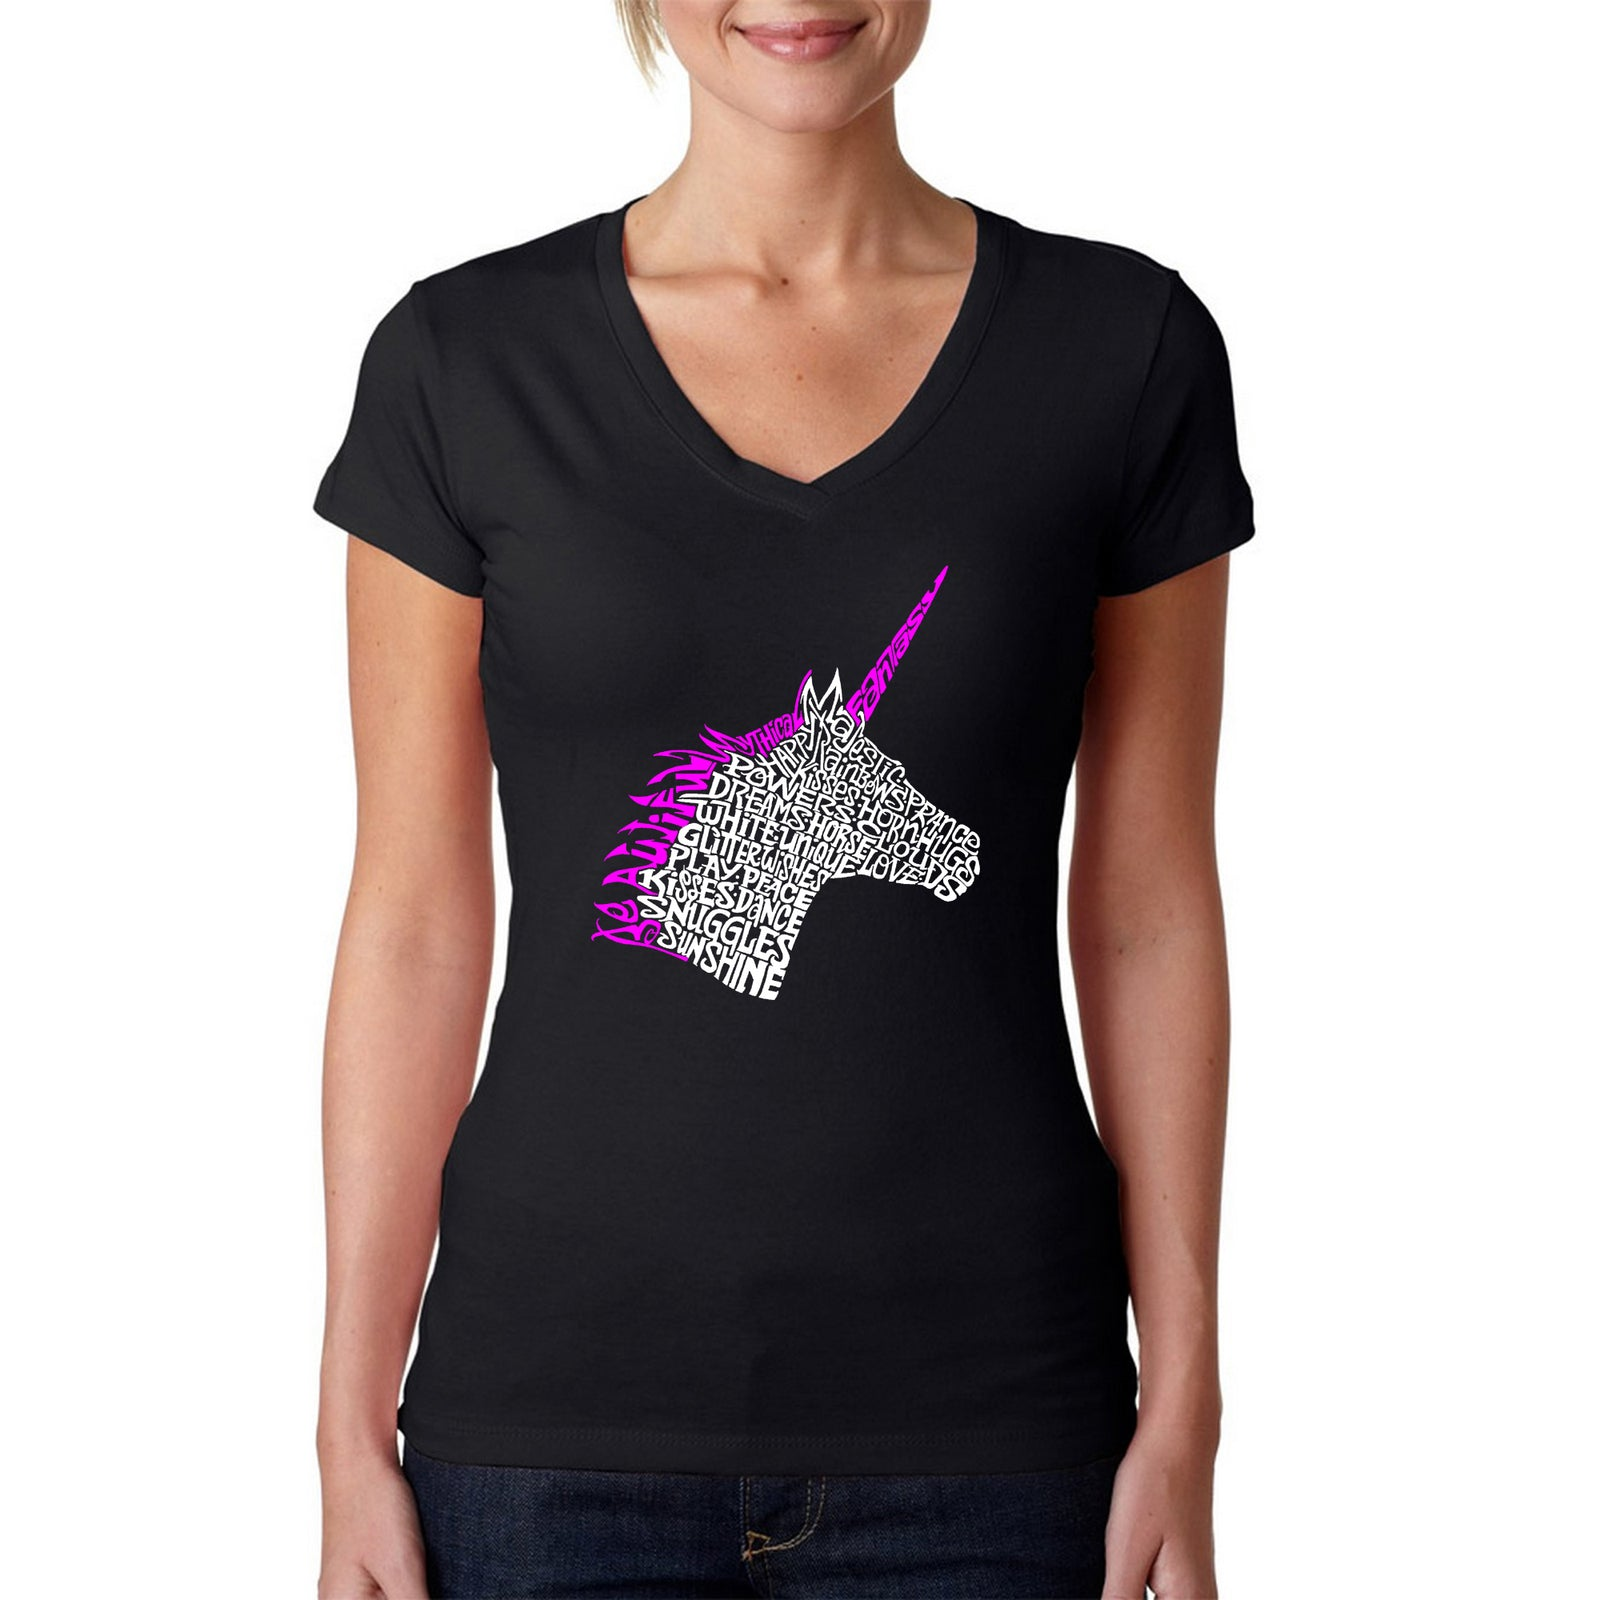 Women's Word Art V-Neck T-Shirt - Unicorn